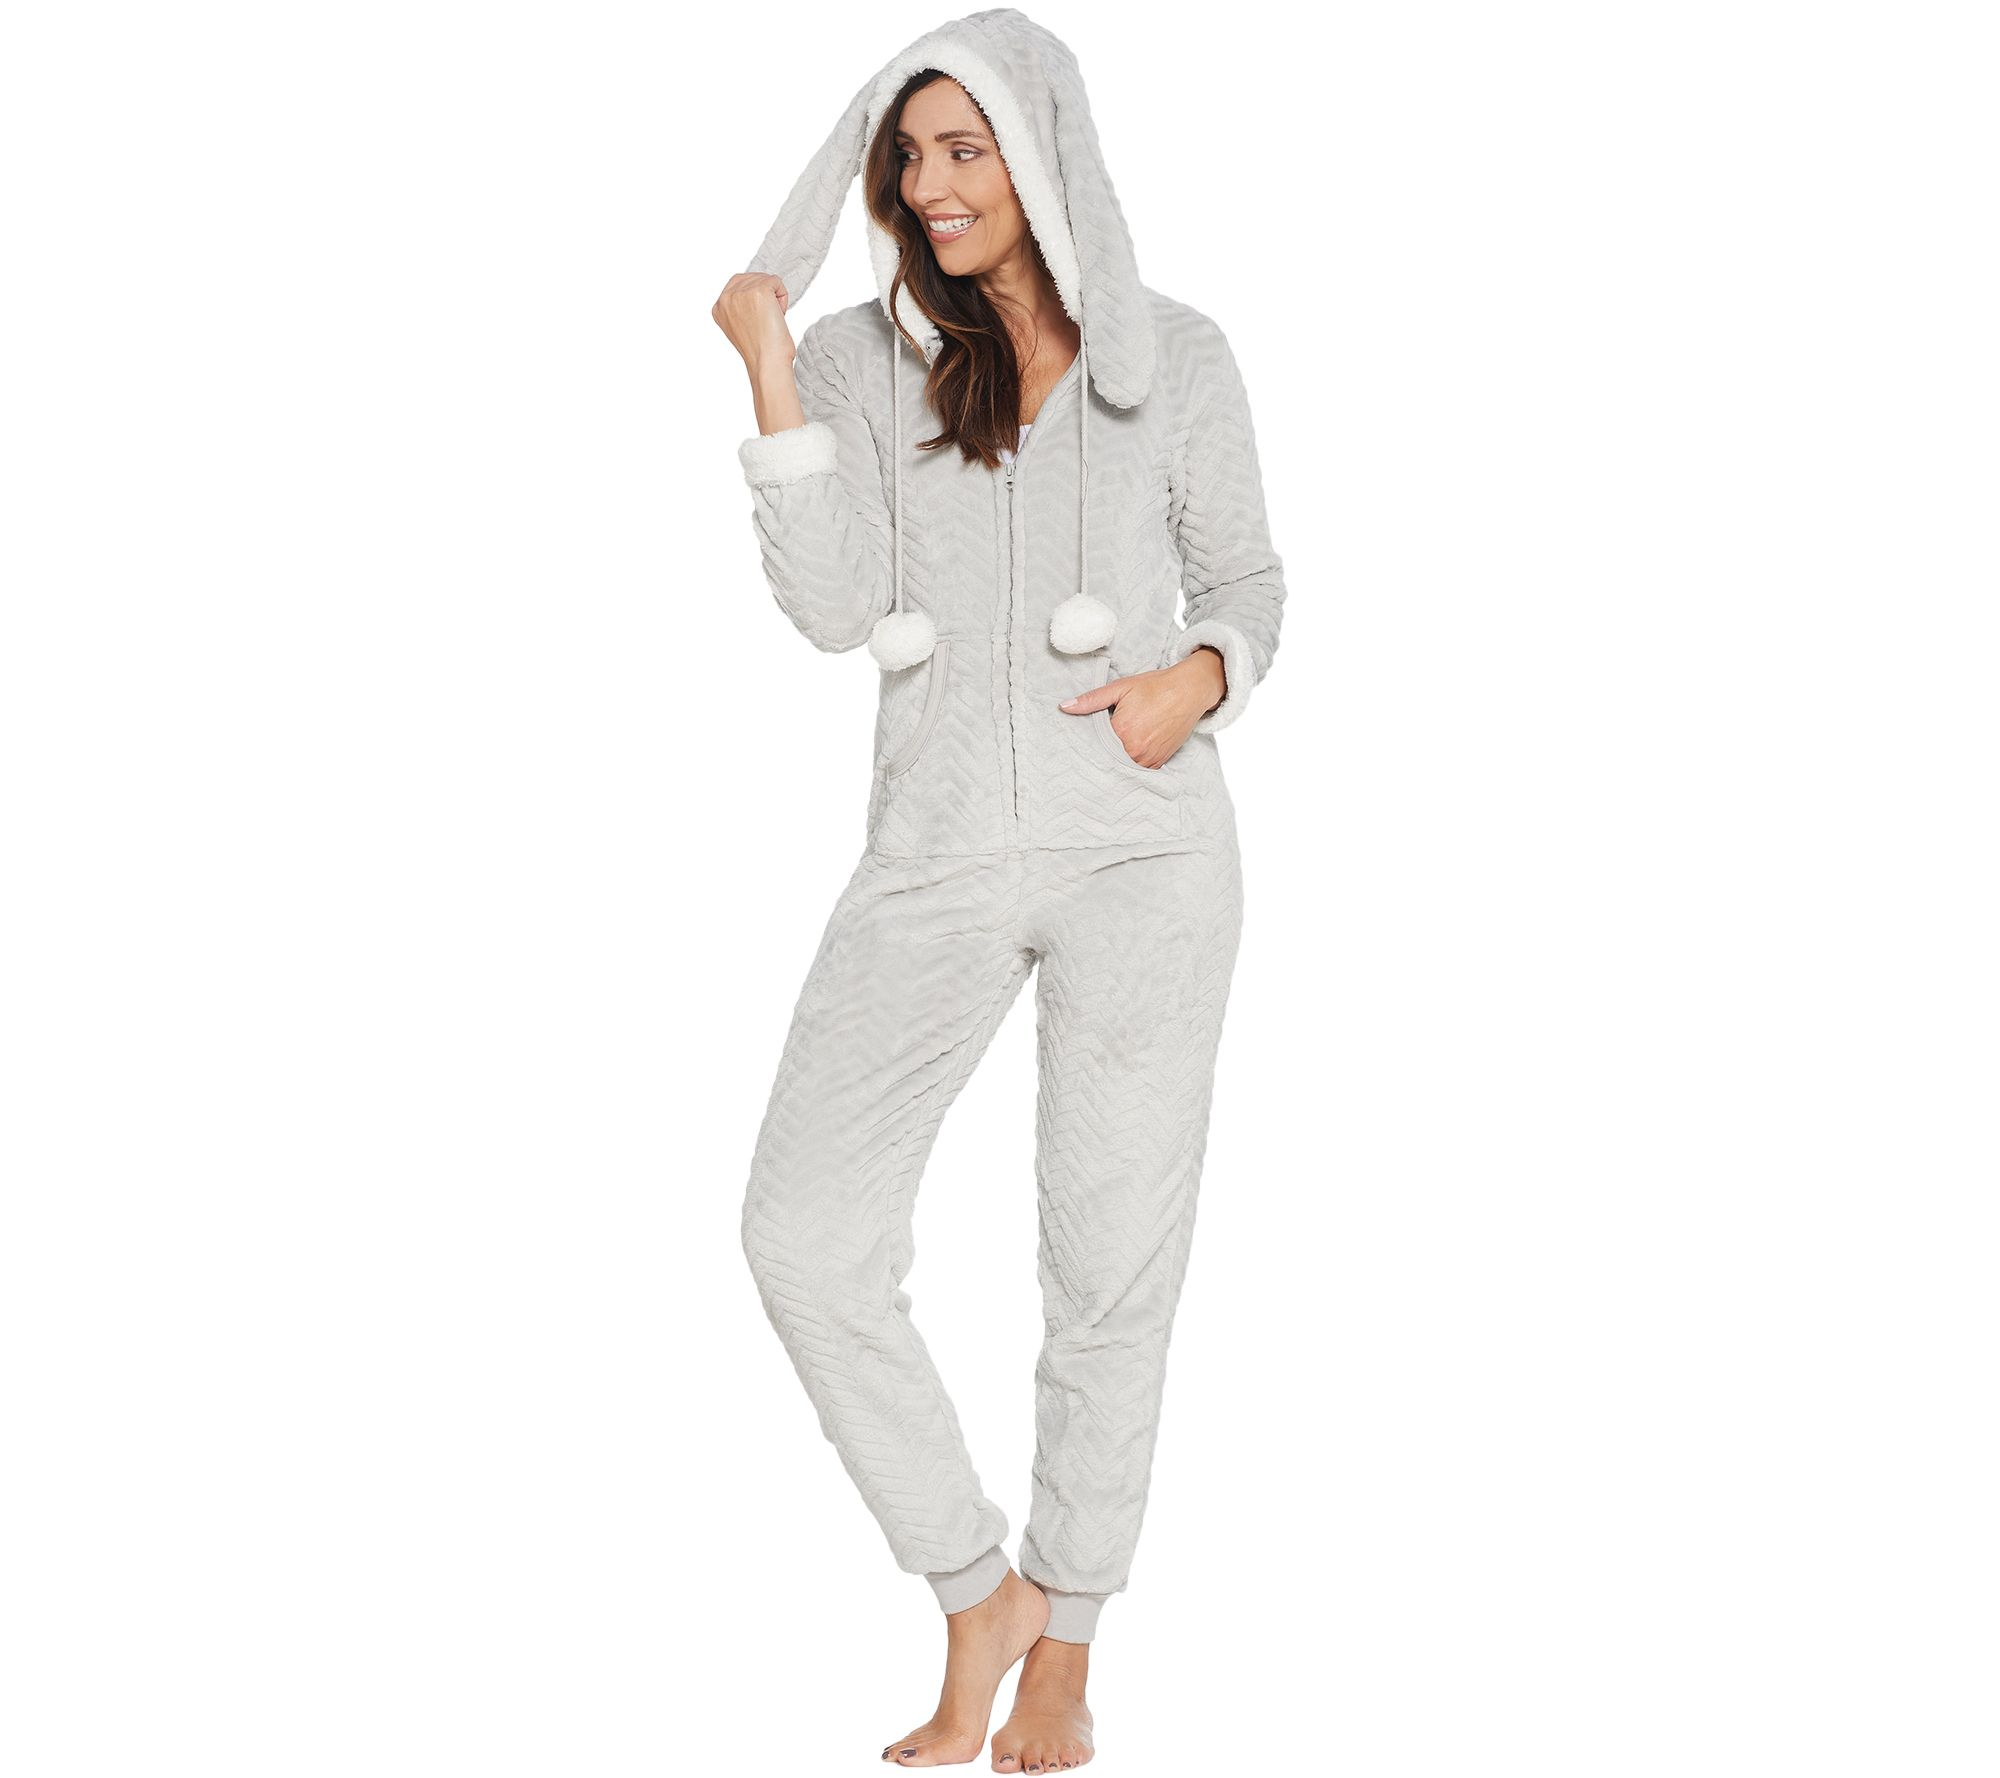 b2a736ff41 French Jenny Cuddle Critters Hooded Onesie w  Pockets - Page 1 — QVC.com